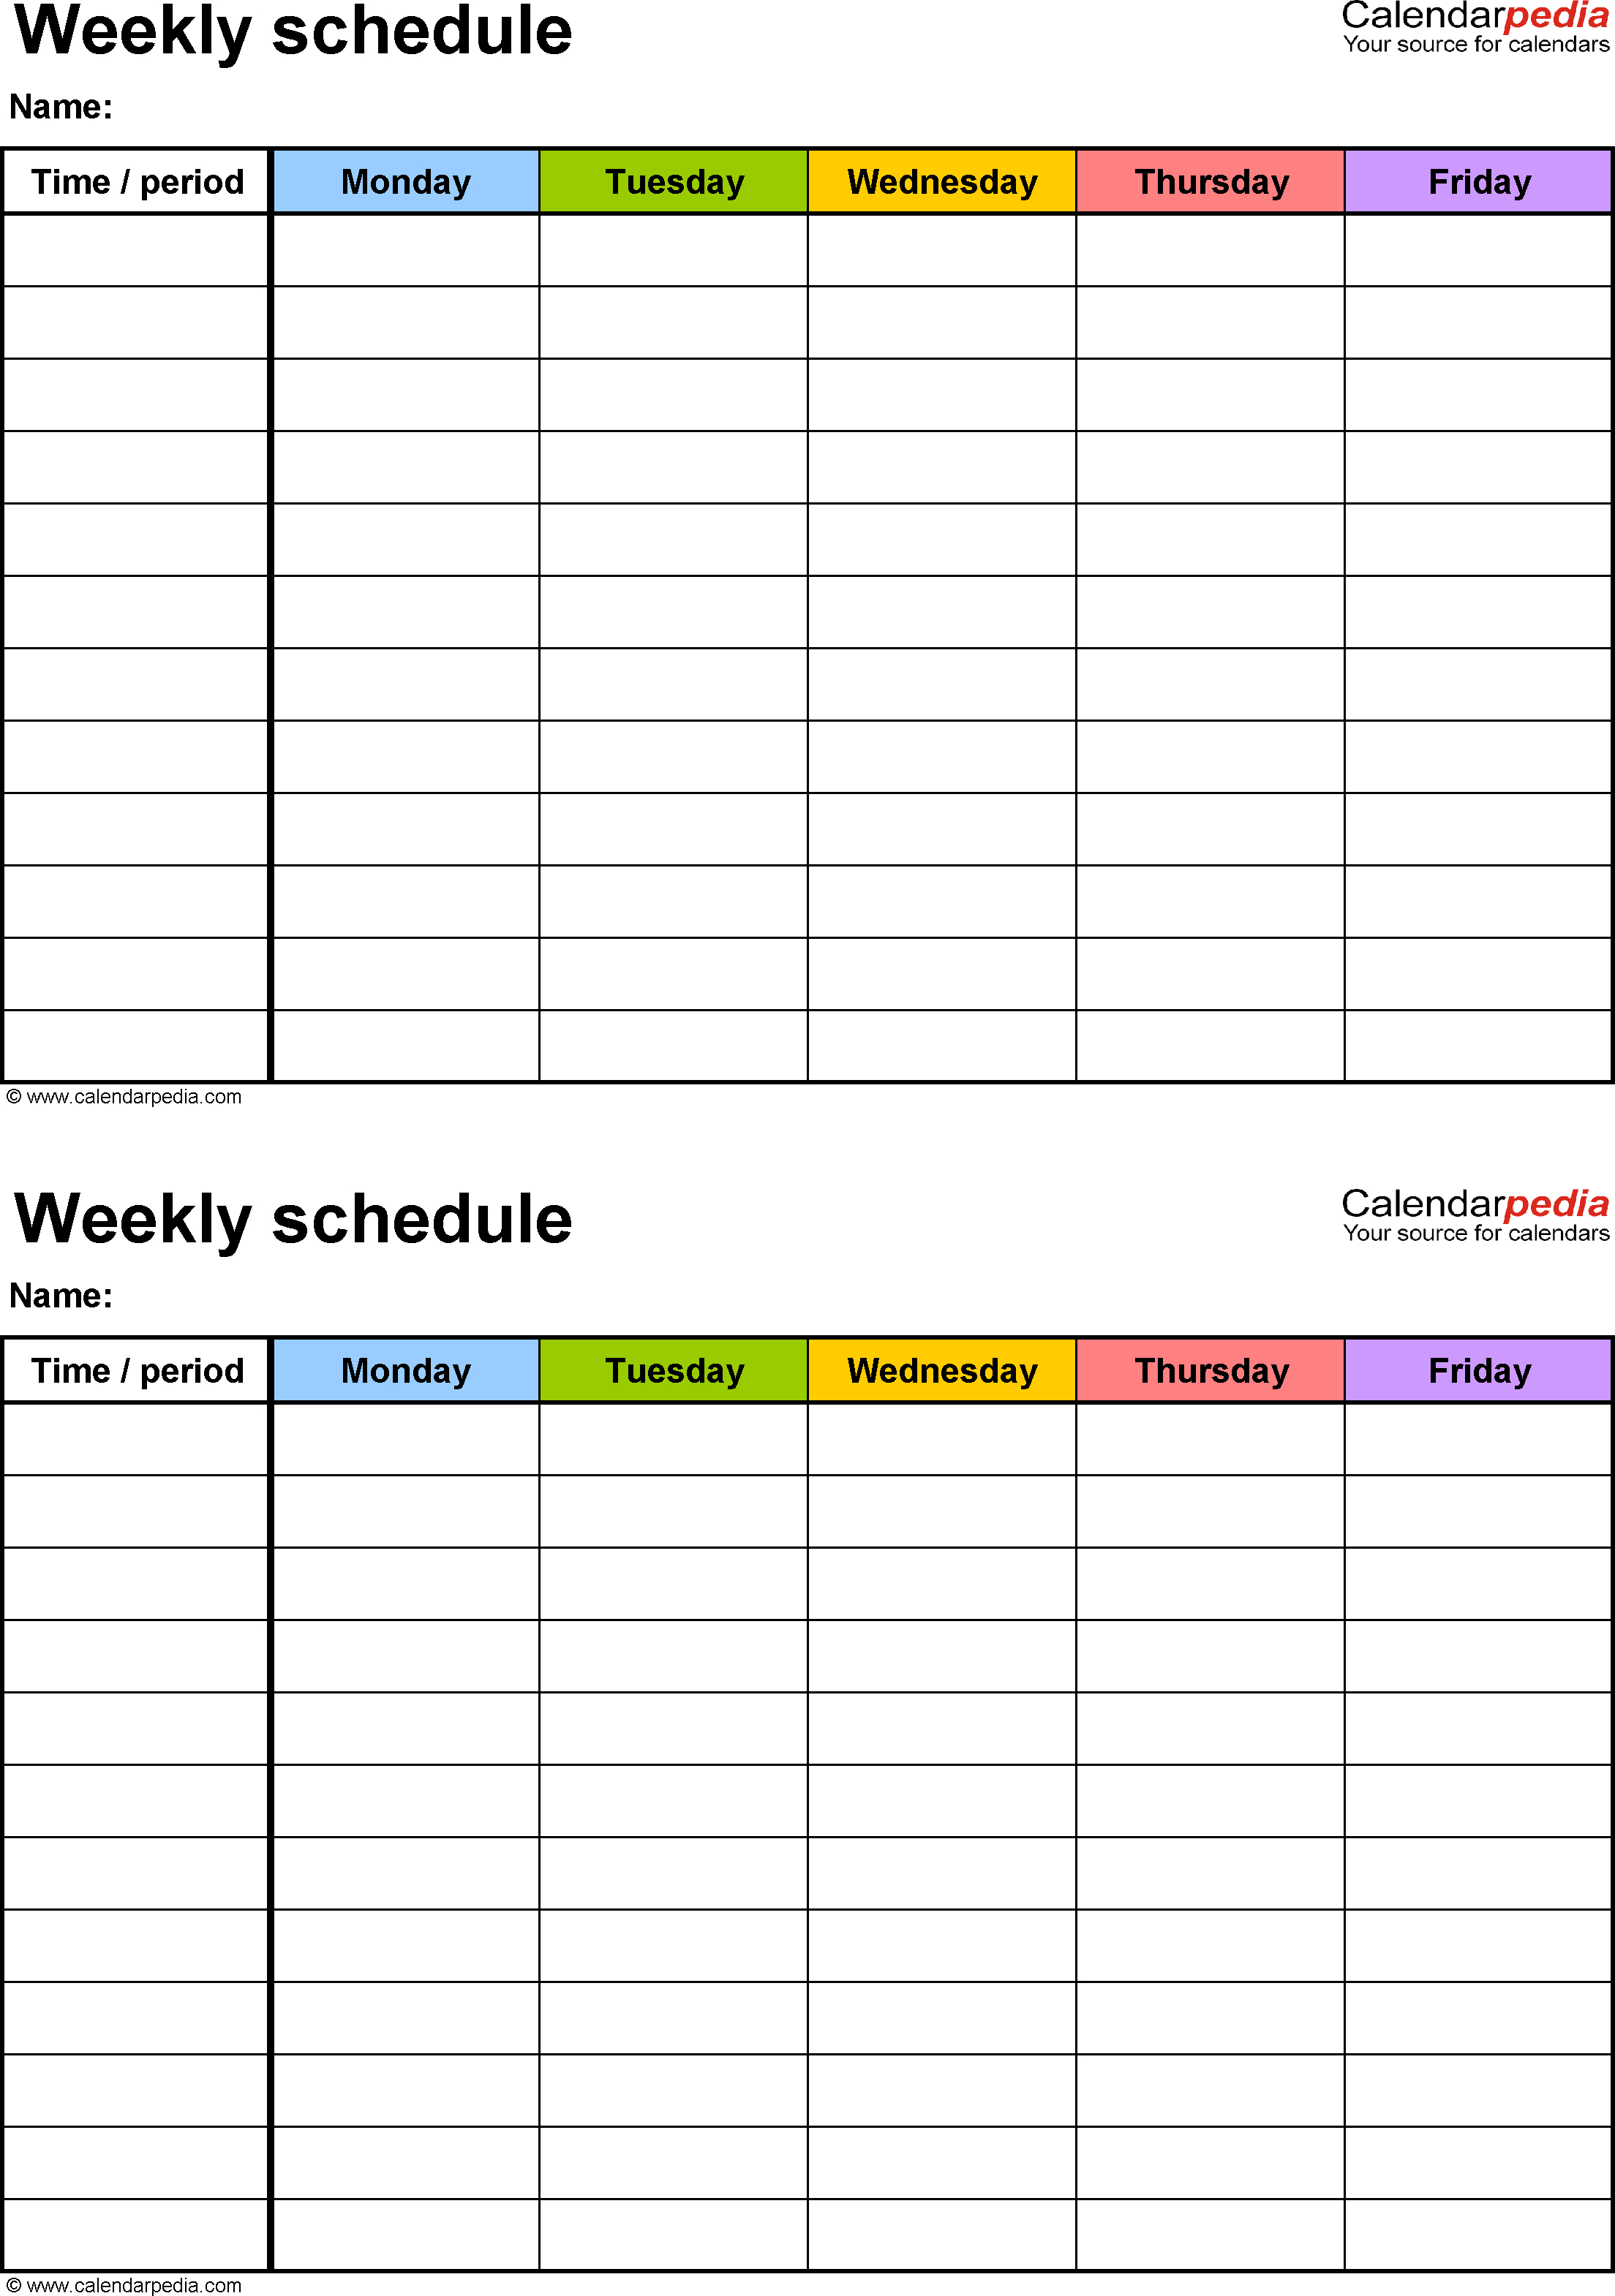 Free Weekly Schedule Templates For Word - 18 Templates with Blank Weekly Monday Through Friday Calendar Template